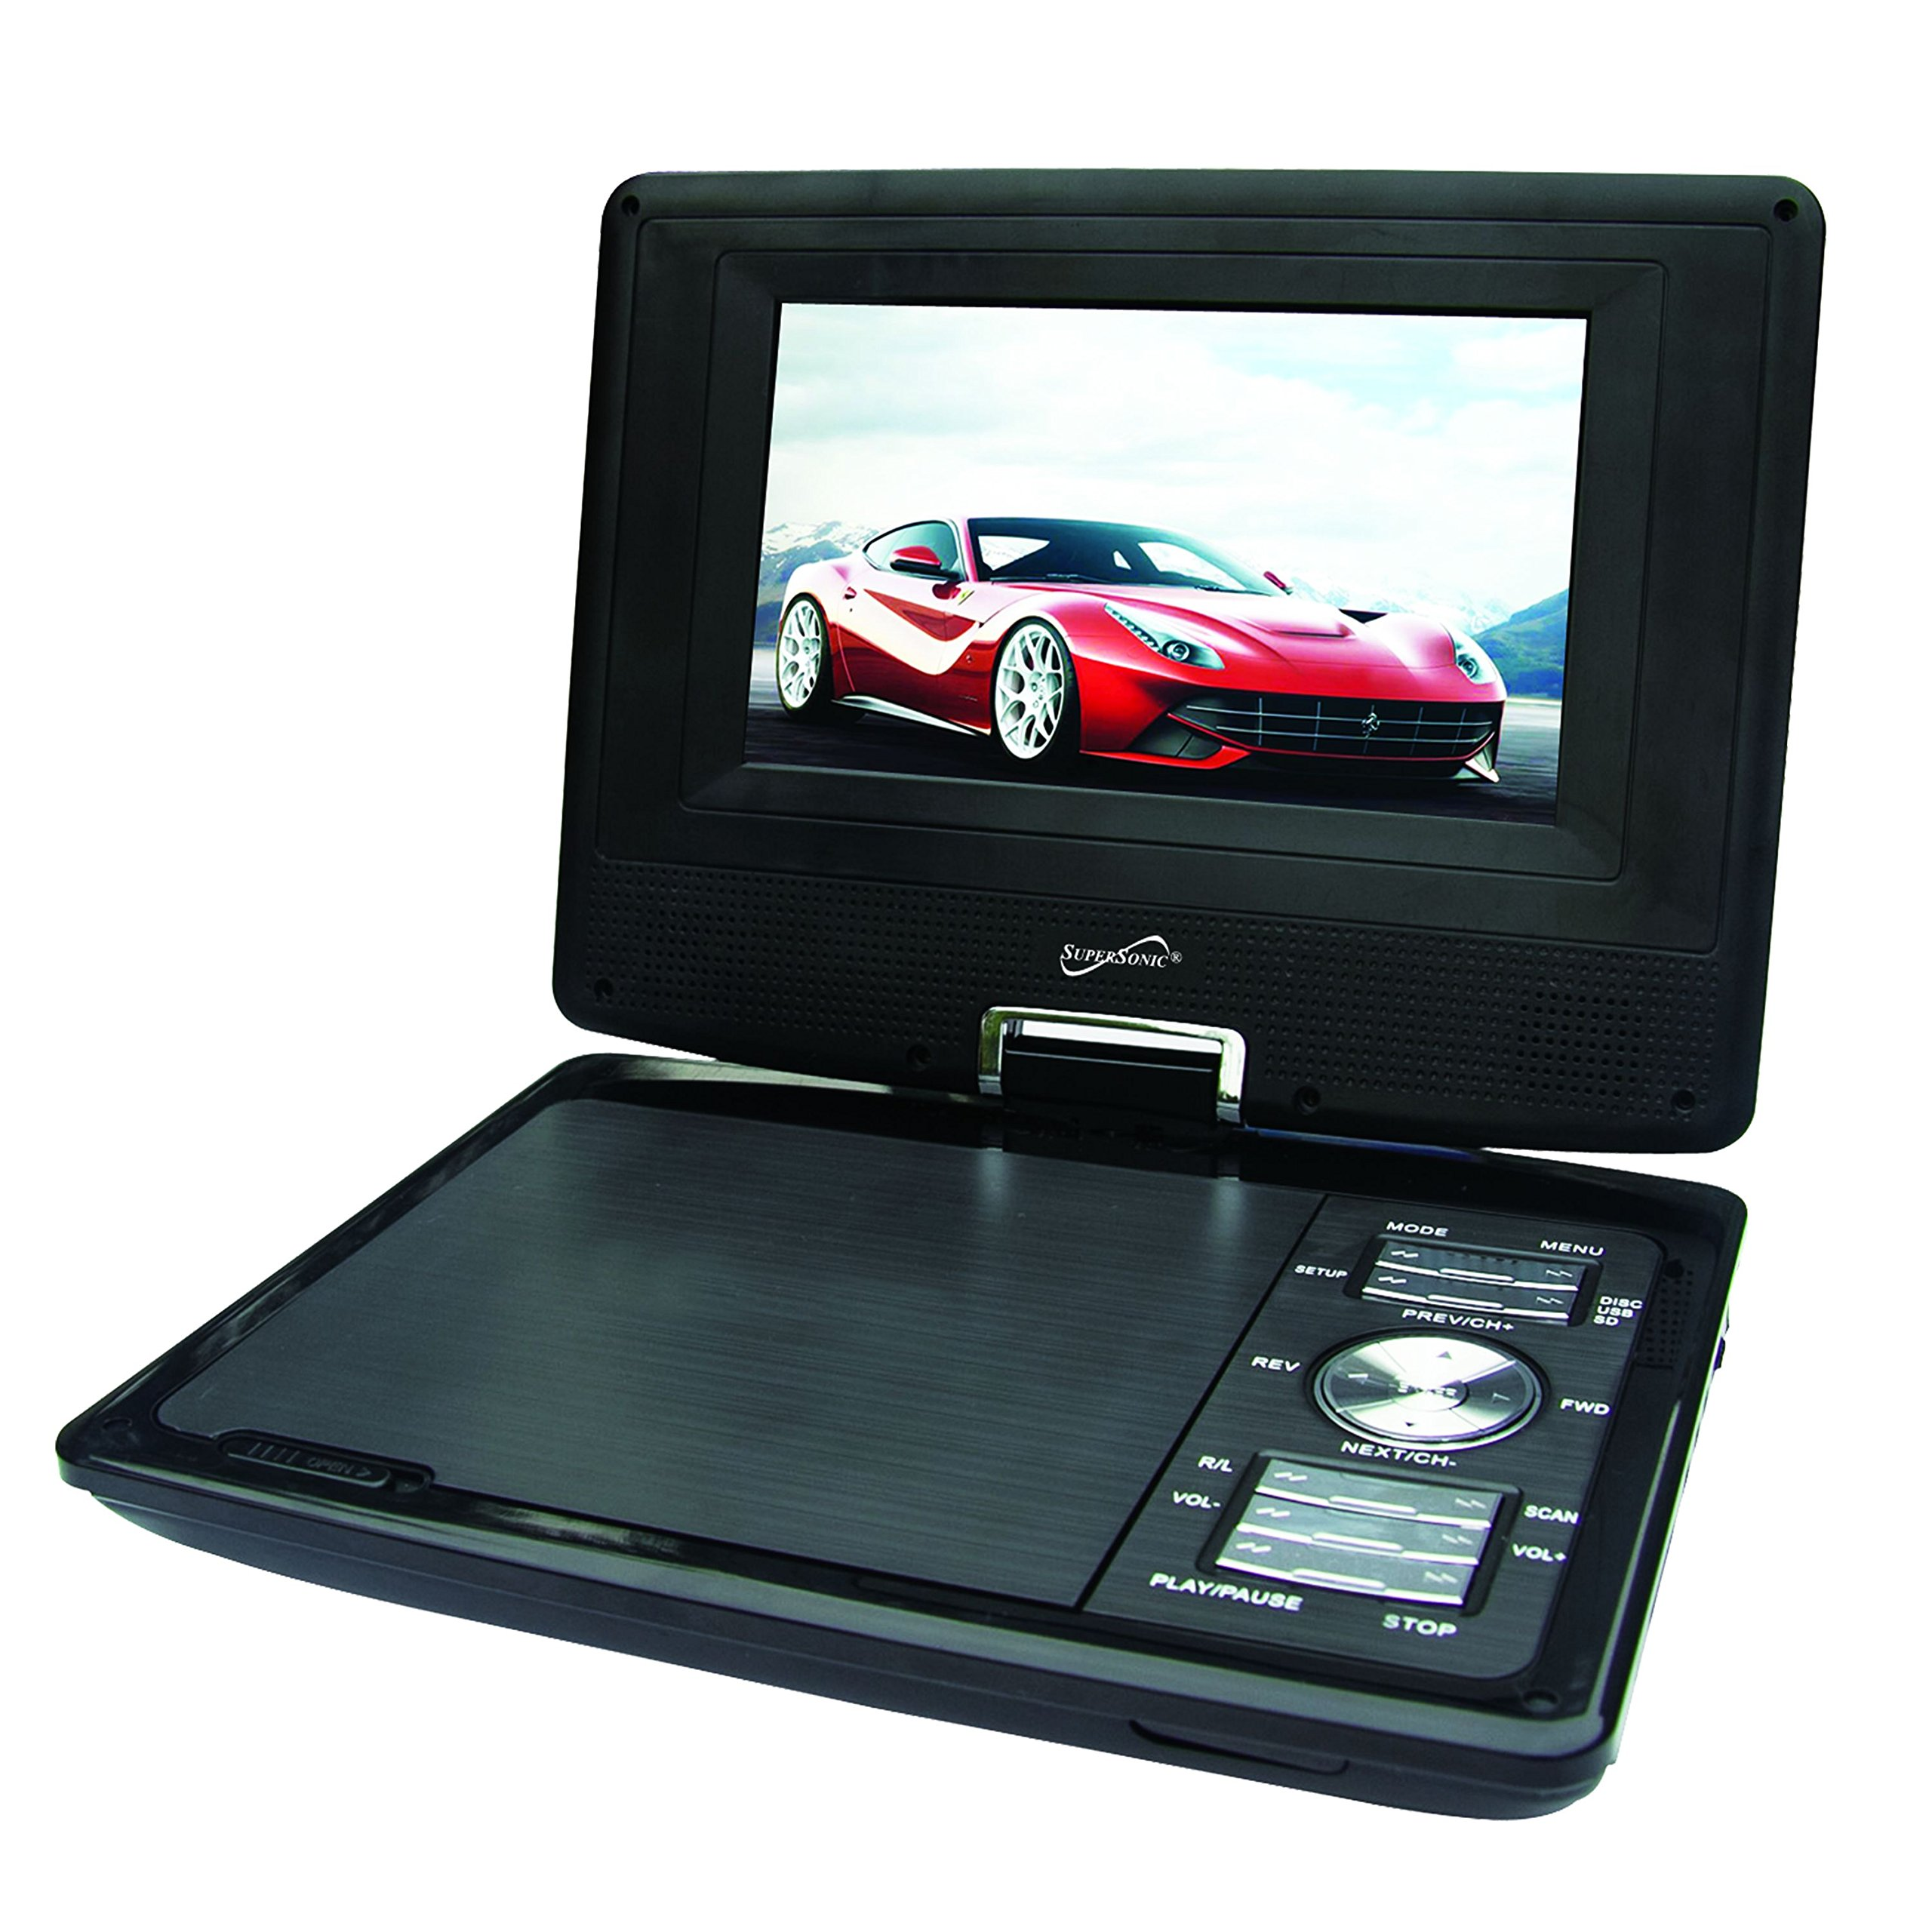 "Supersonic Sc-257 Portable Dvd Player - 7"" Display - 480 ..."